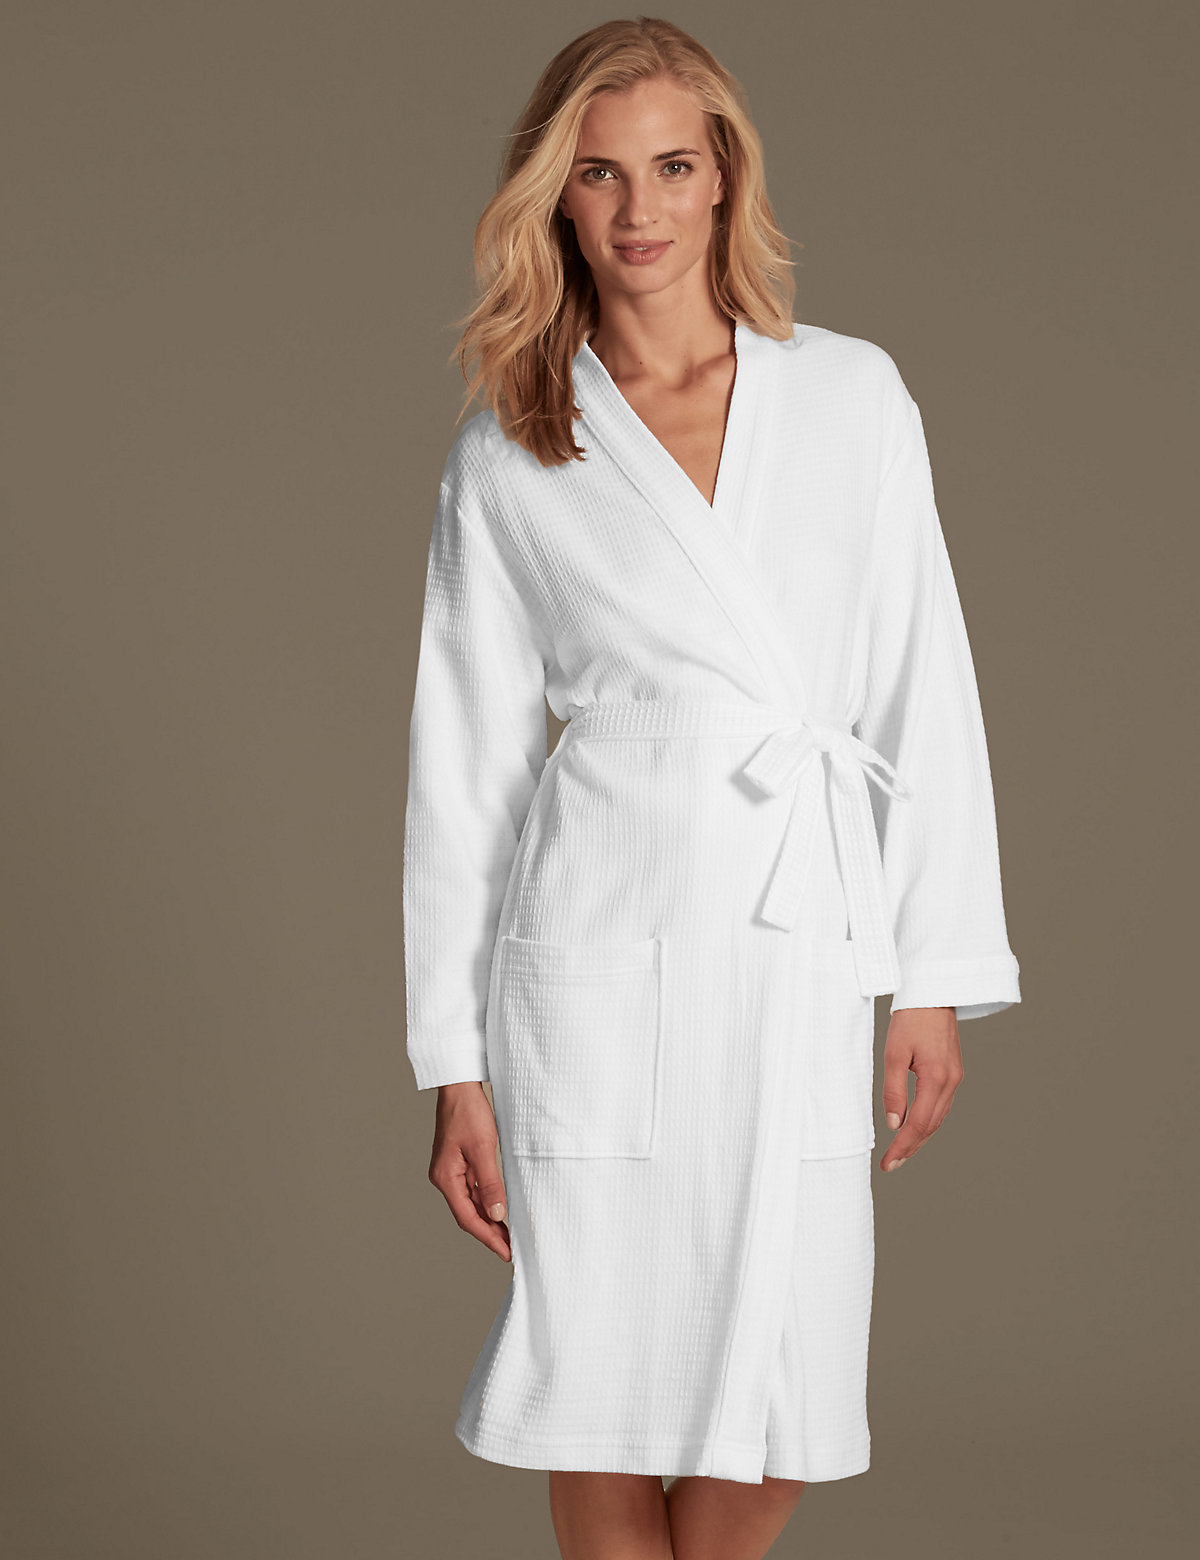 Contemporary Asda Dressing Gowns Mold - Ball Gown Wedding Dresses ...